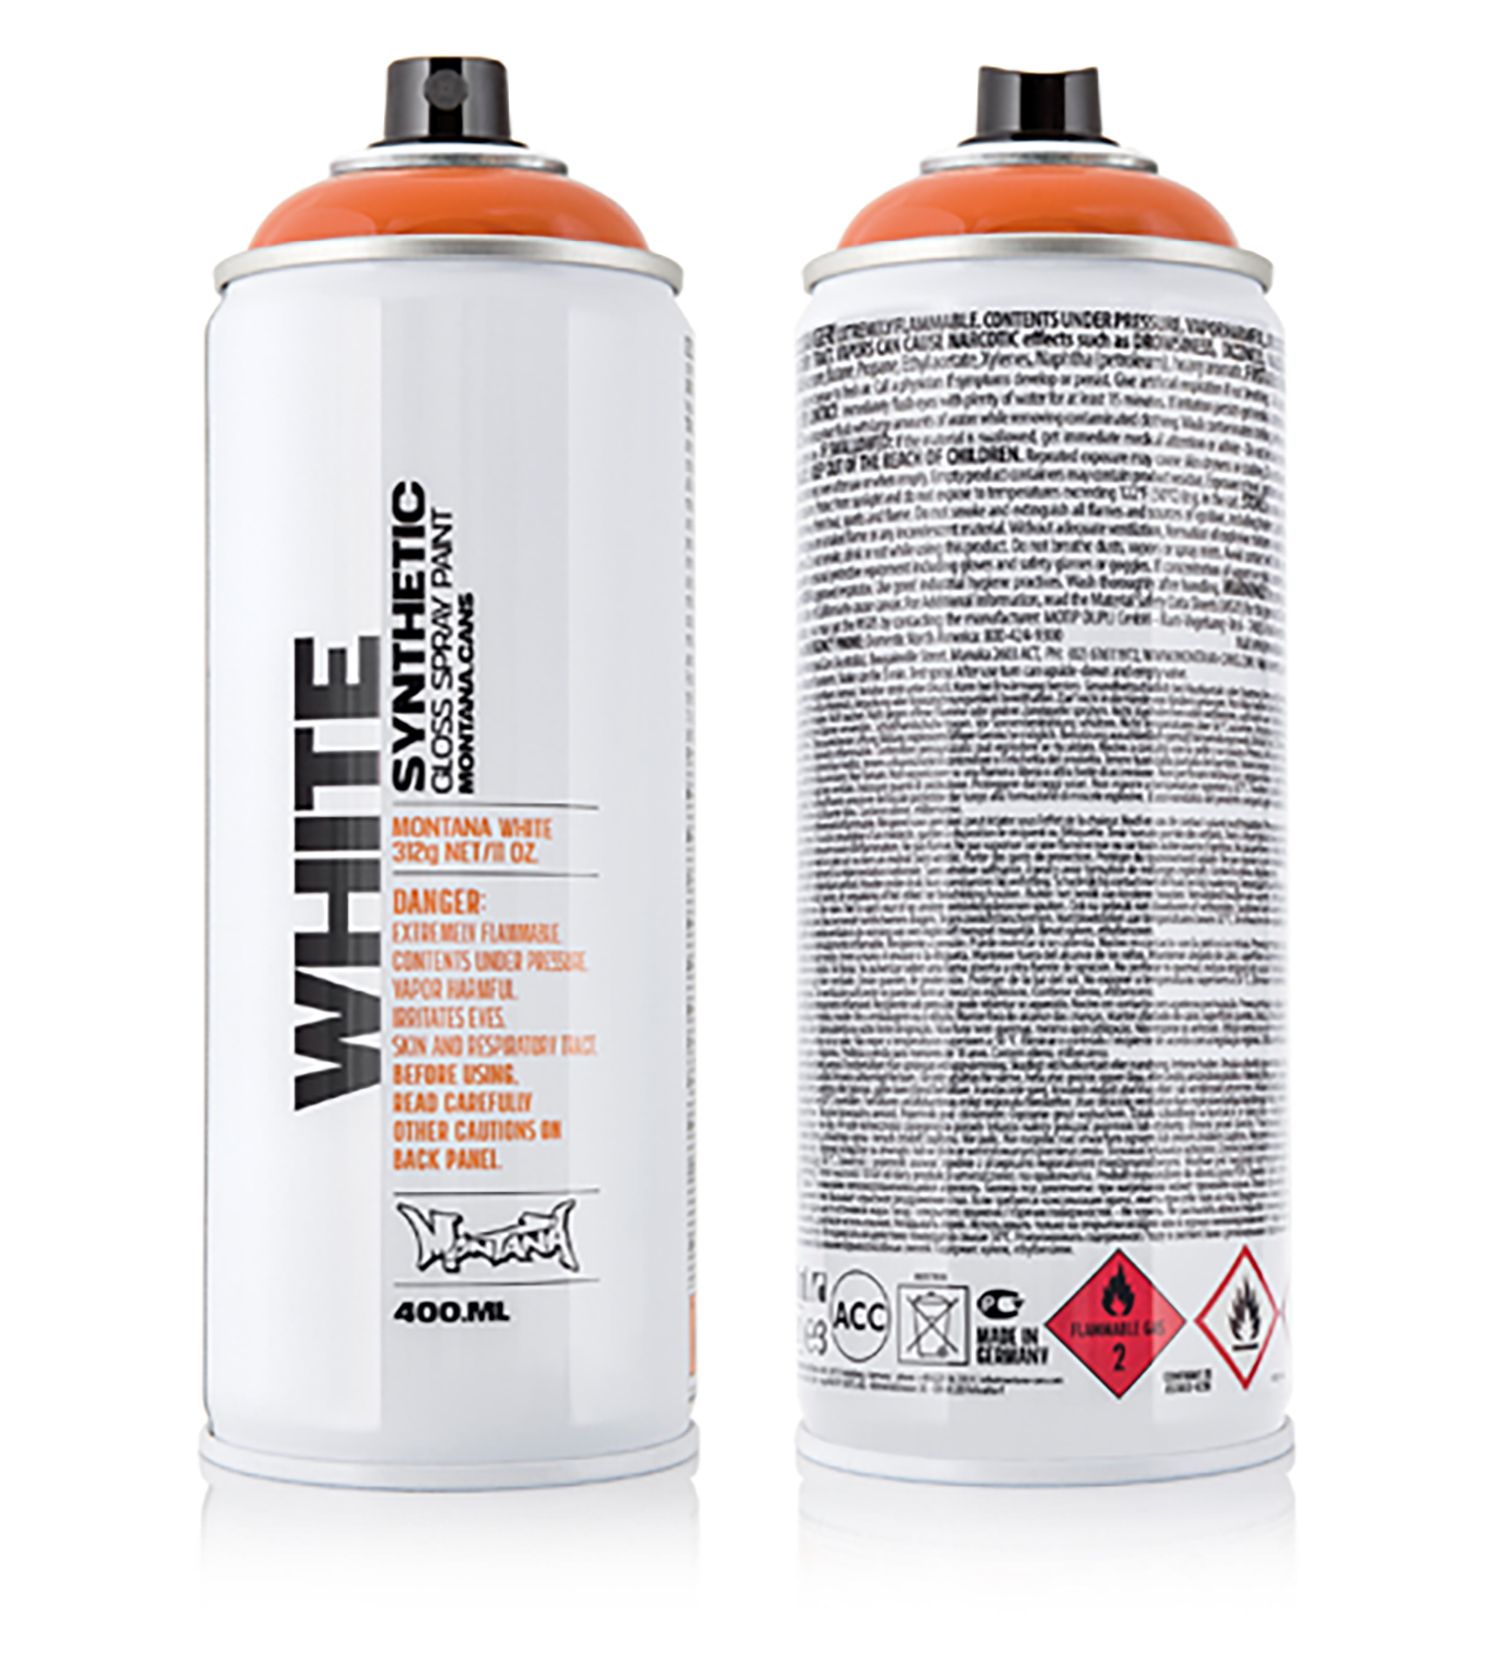 MONTANA-WHITE-SPRAY-400ML-2080